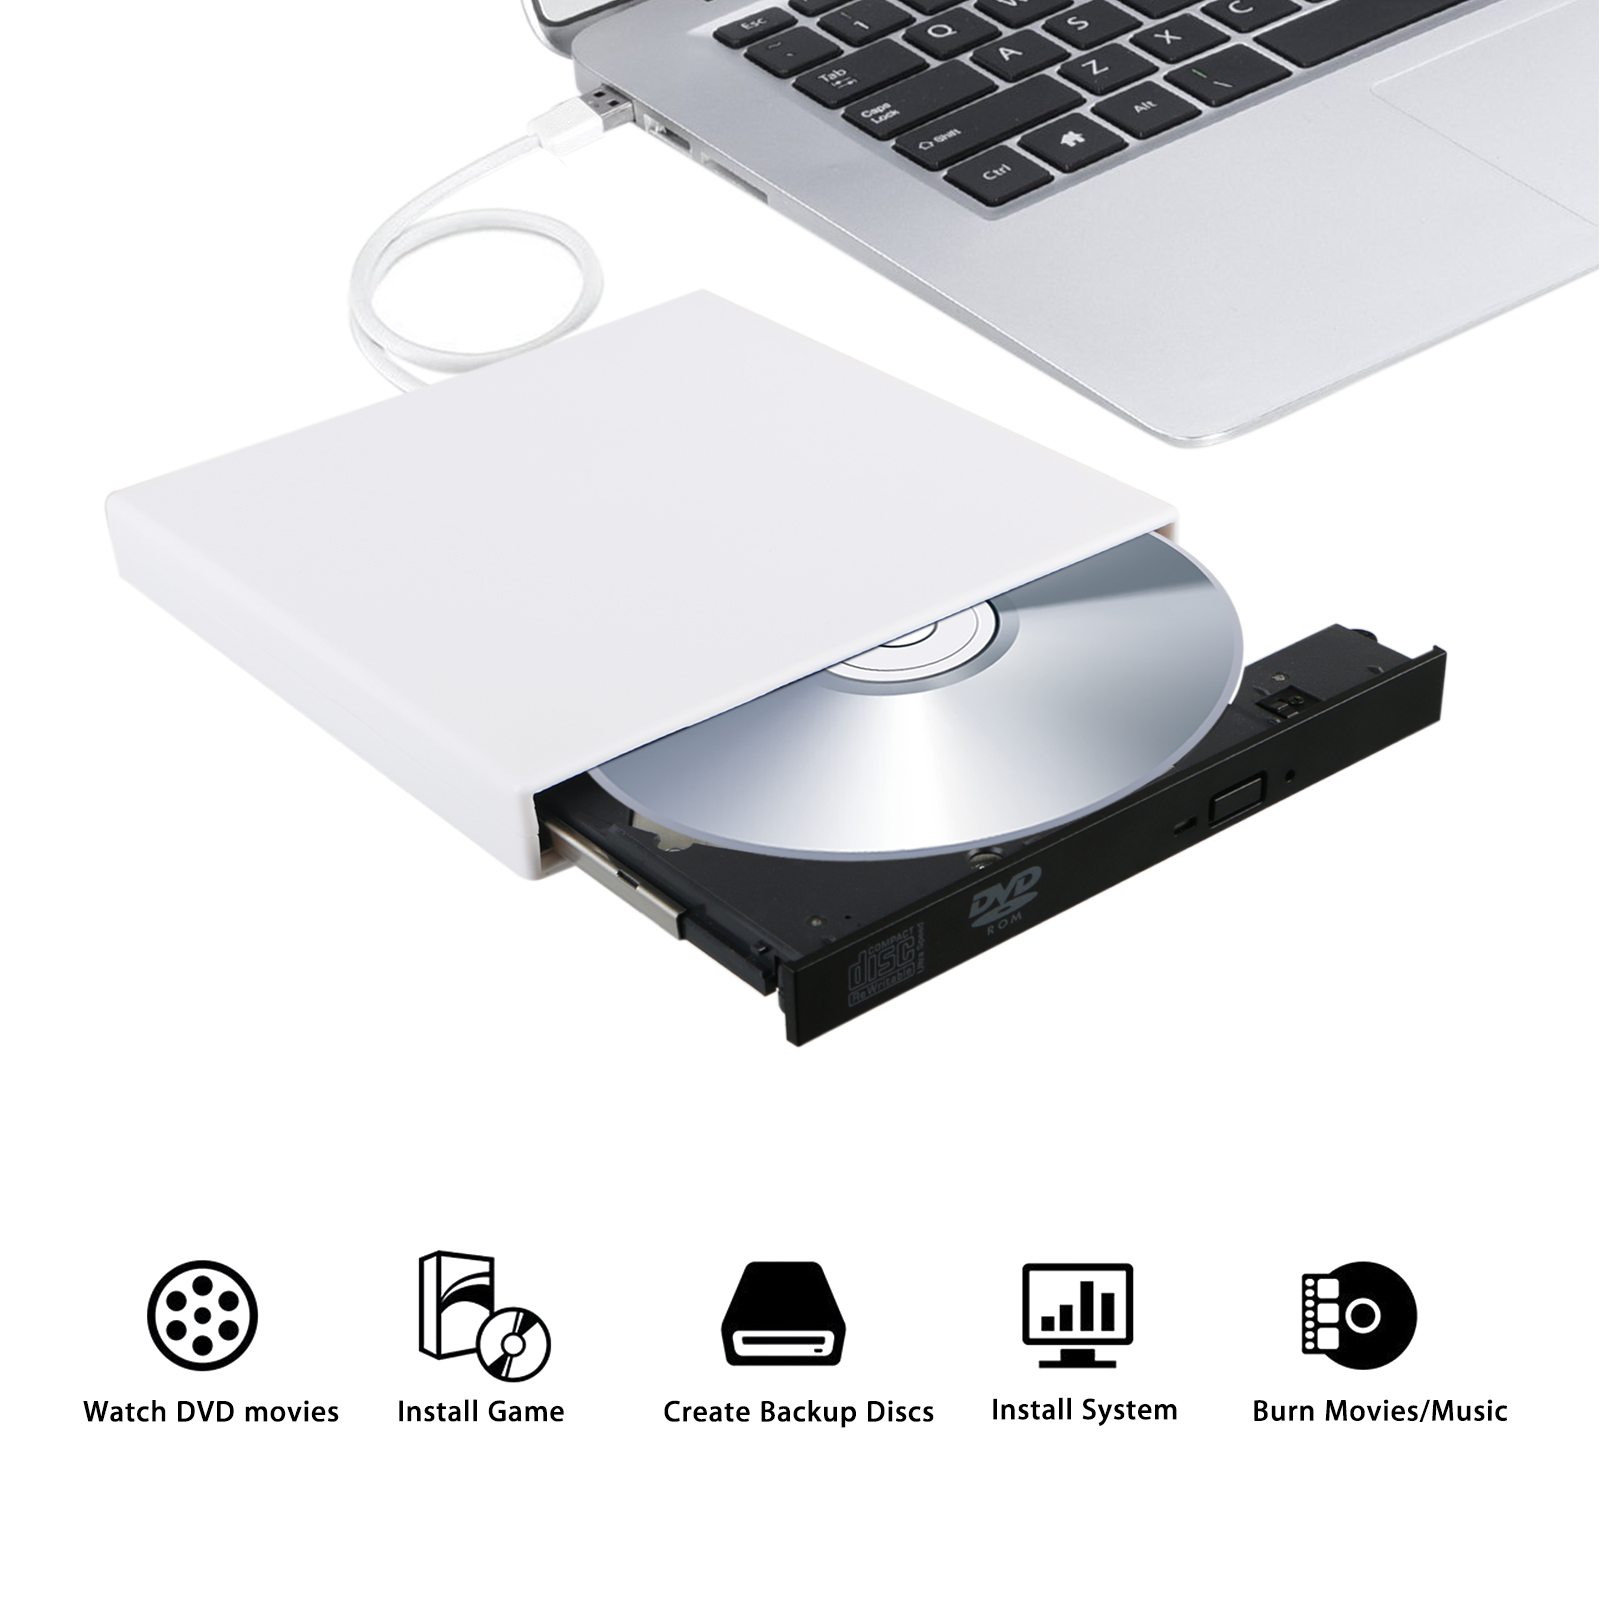 External DVD Drive USB 2.0 External Portable CD- DVD ROM Combo Burner Drive Write for Laptop Notebook PC Desktop Computer(White)